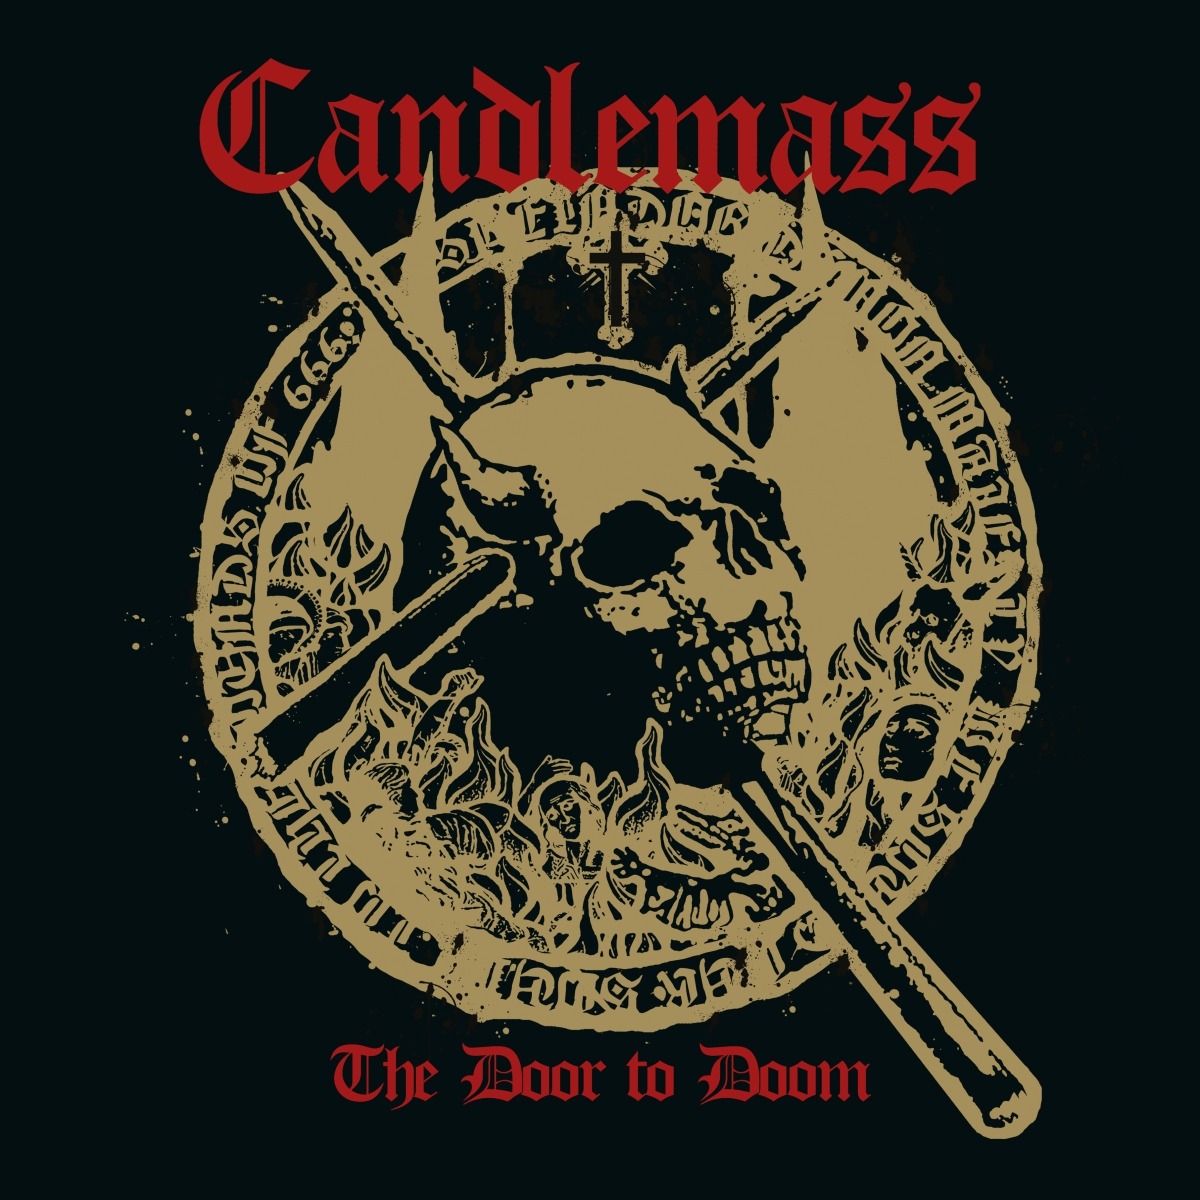 Album Review: CANDLEMASS 'The Door to Doom'